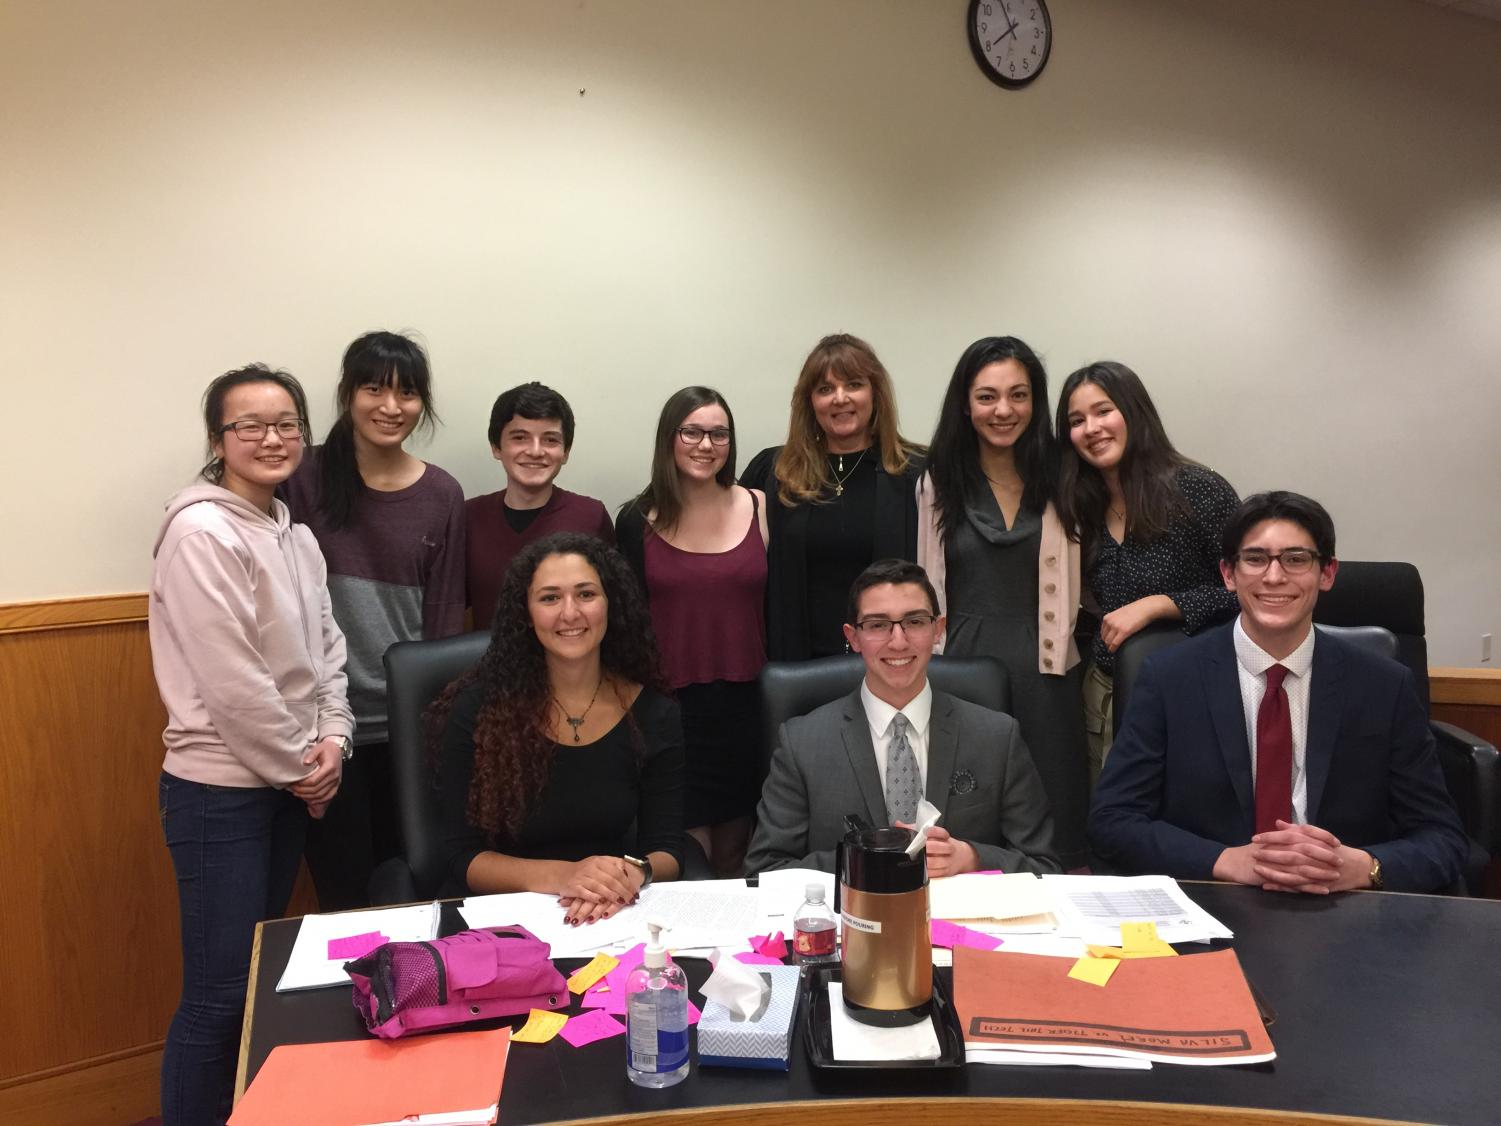 MOCK TRIAL TEAM Front Row left to right: Keren Katz, Ben Feldman, Jonah Samuels.  Back Row left to right: Bianca Xiao, Chihjung Chen, Evan Zales, Anna Fleming (The Judge), Anne-Sophie Bilello, Camille Furrer